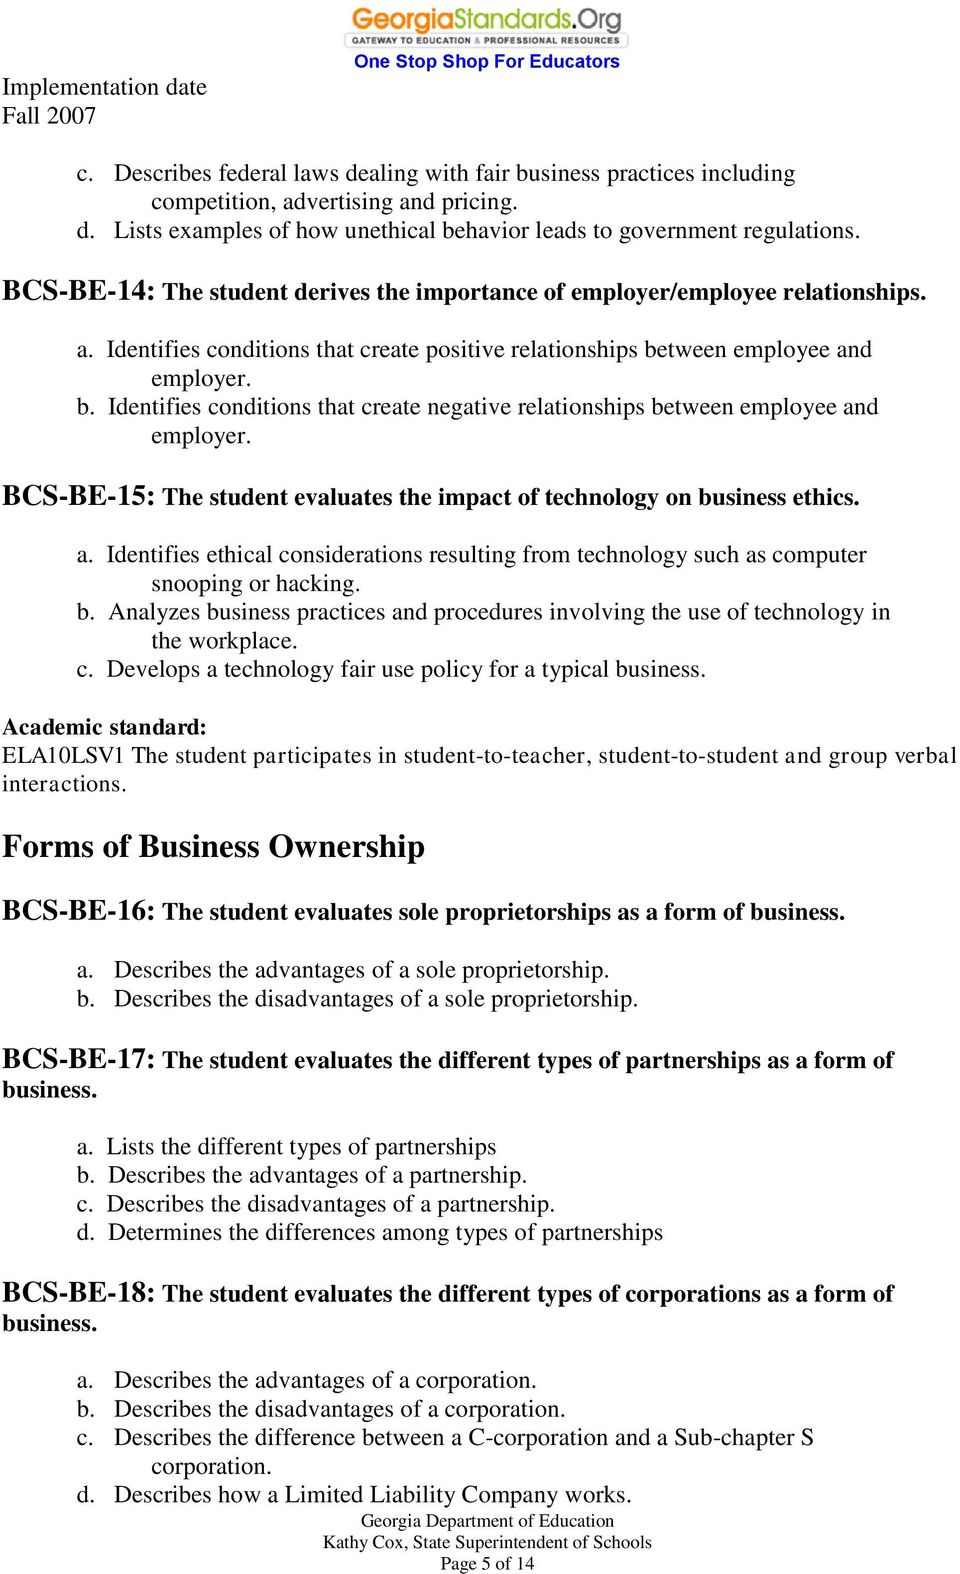 tween employee and employer. b. Identifies conditions that create negative relationships between employee and employer. BCS-BE-15: The student evaluates the impact of technology on business ethics. a. Identifies ethical considerations resulting from technology such as computer snooping or hacking.